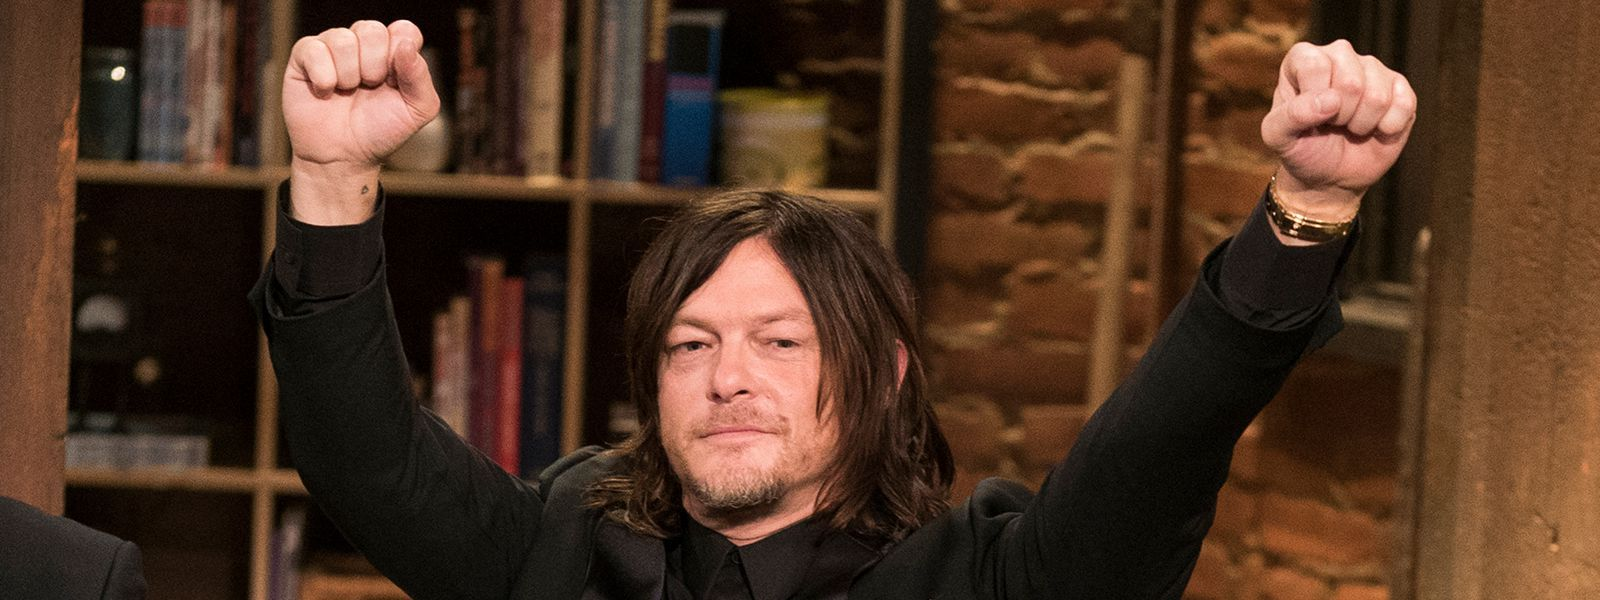 talking-dead-episode-803-pre-norman-reedus-800×600